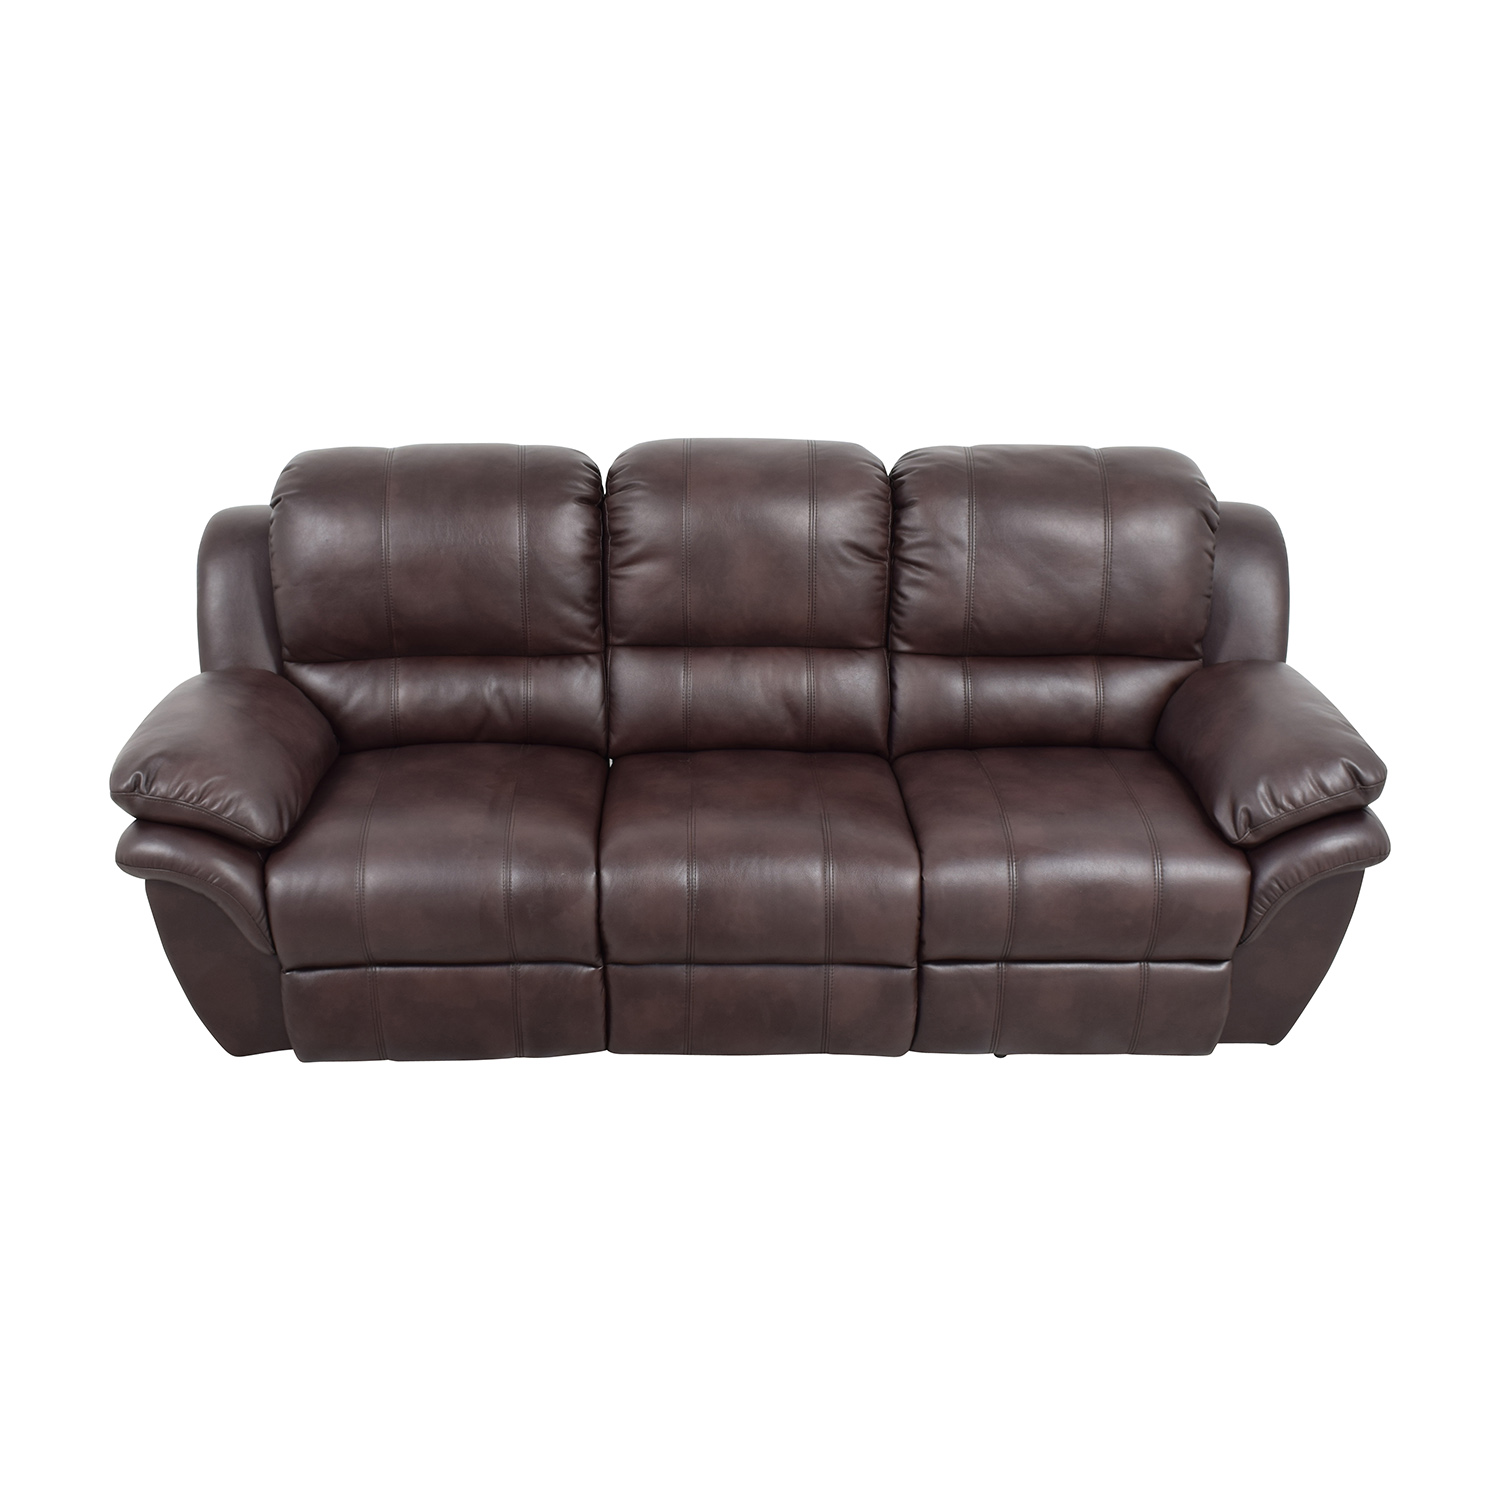 New Classic Home Furnishing New Classic Home Furnishing Leather Reclining Brown Couch used